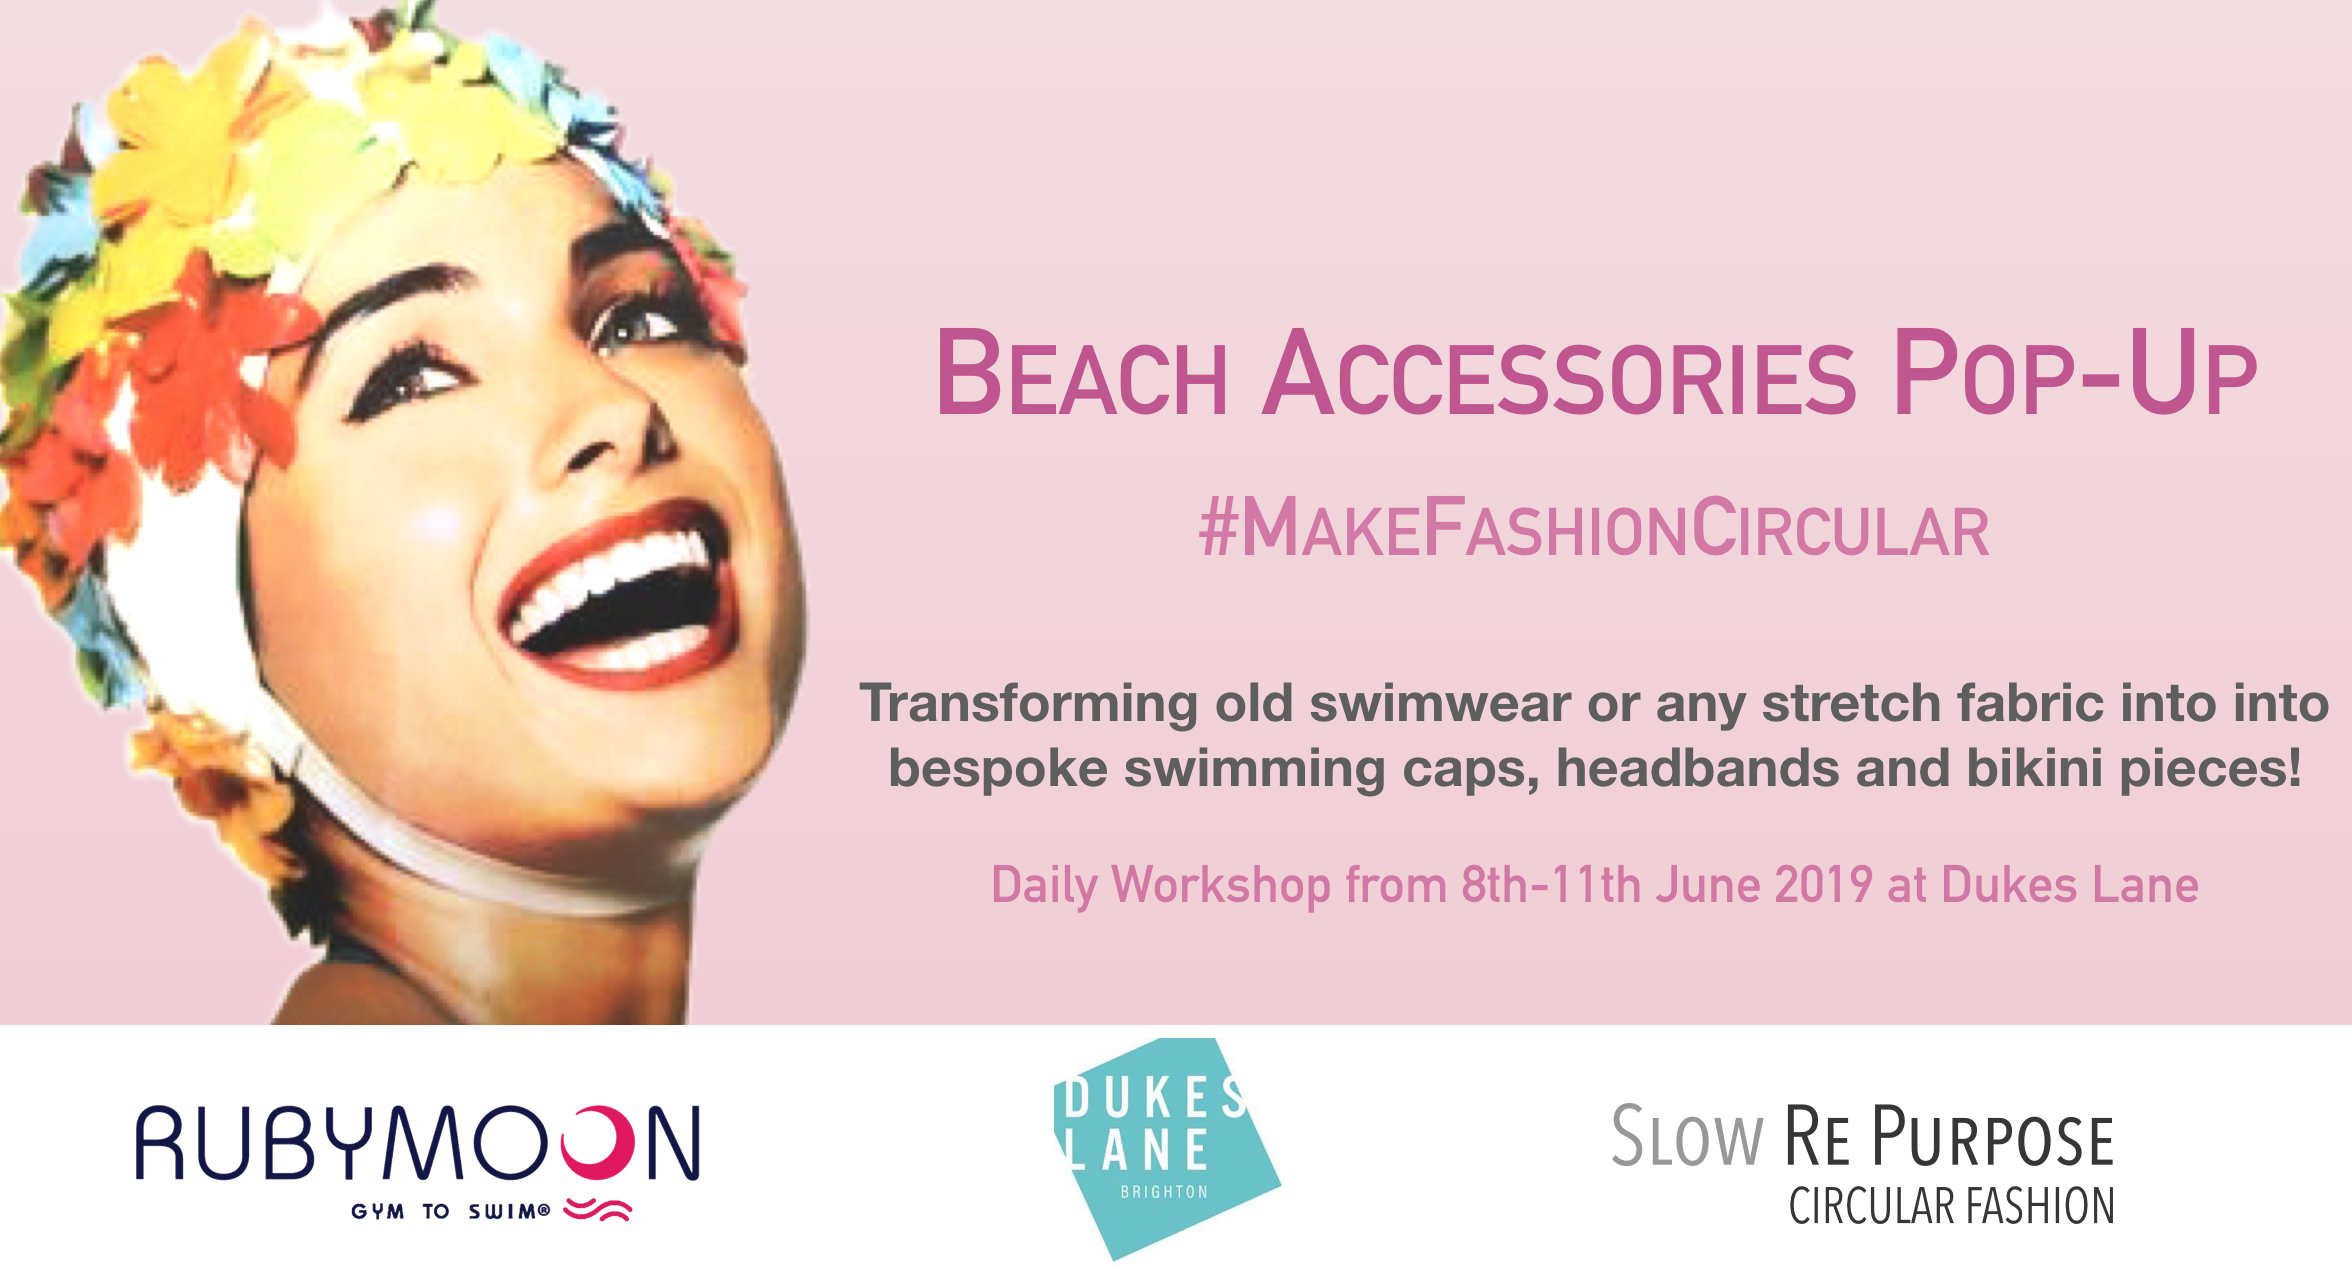 Beach Accessories Pop-Up #MakeFashionCircular